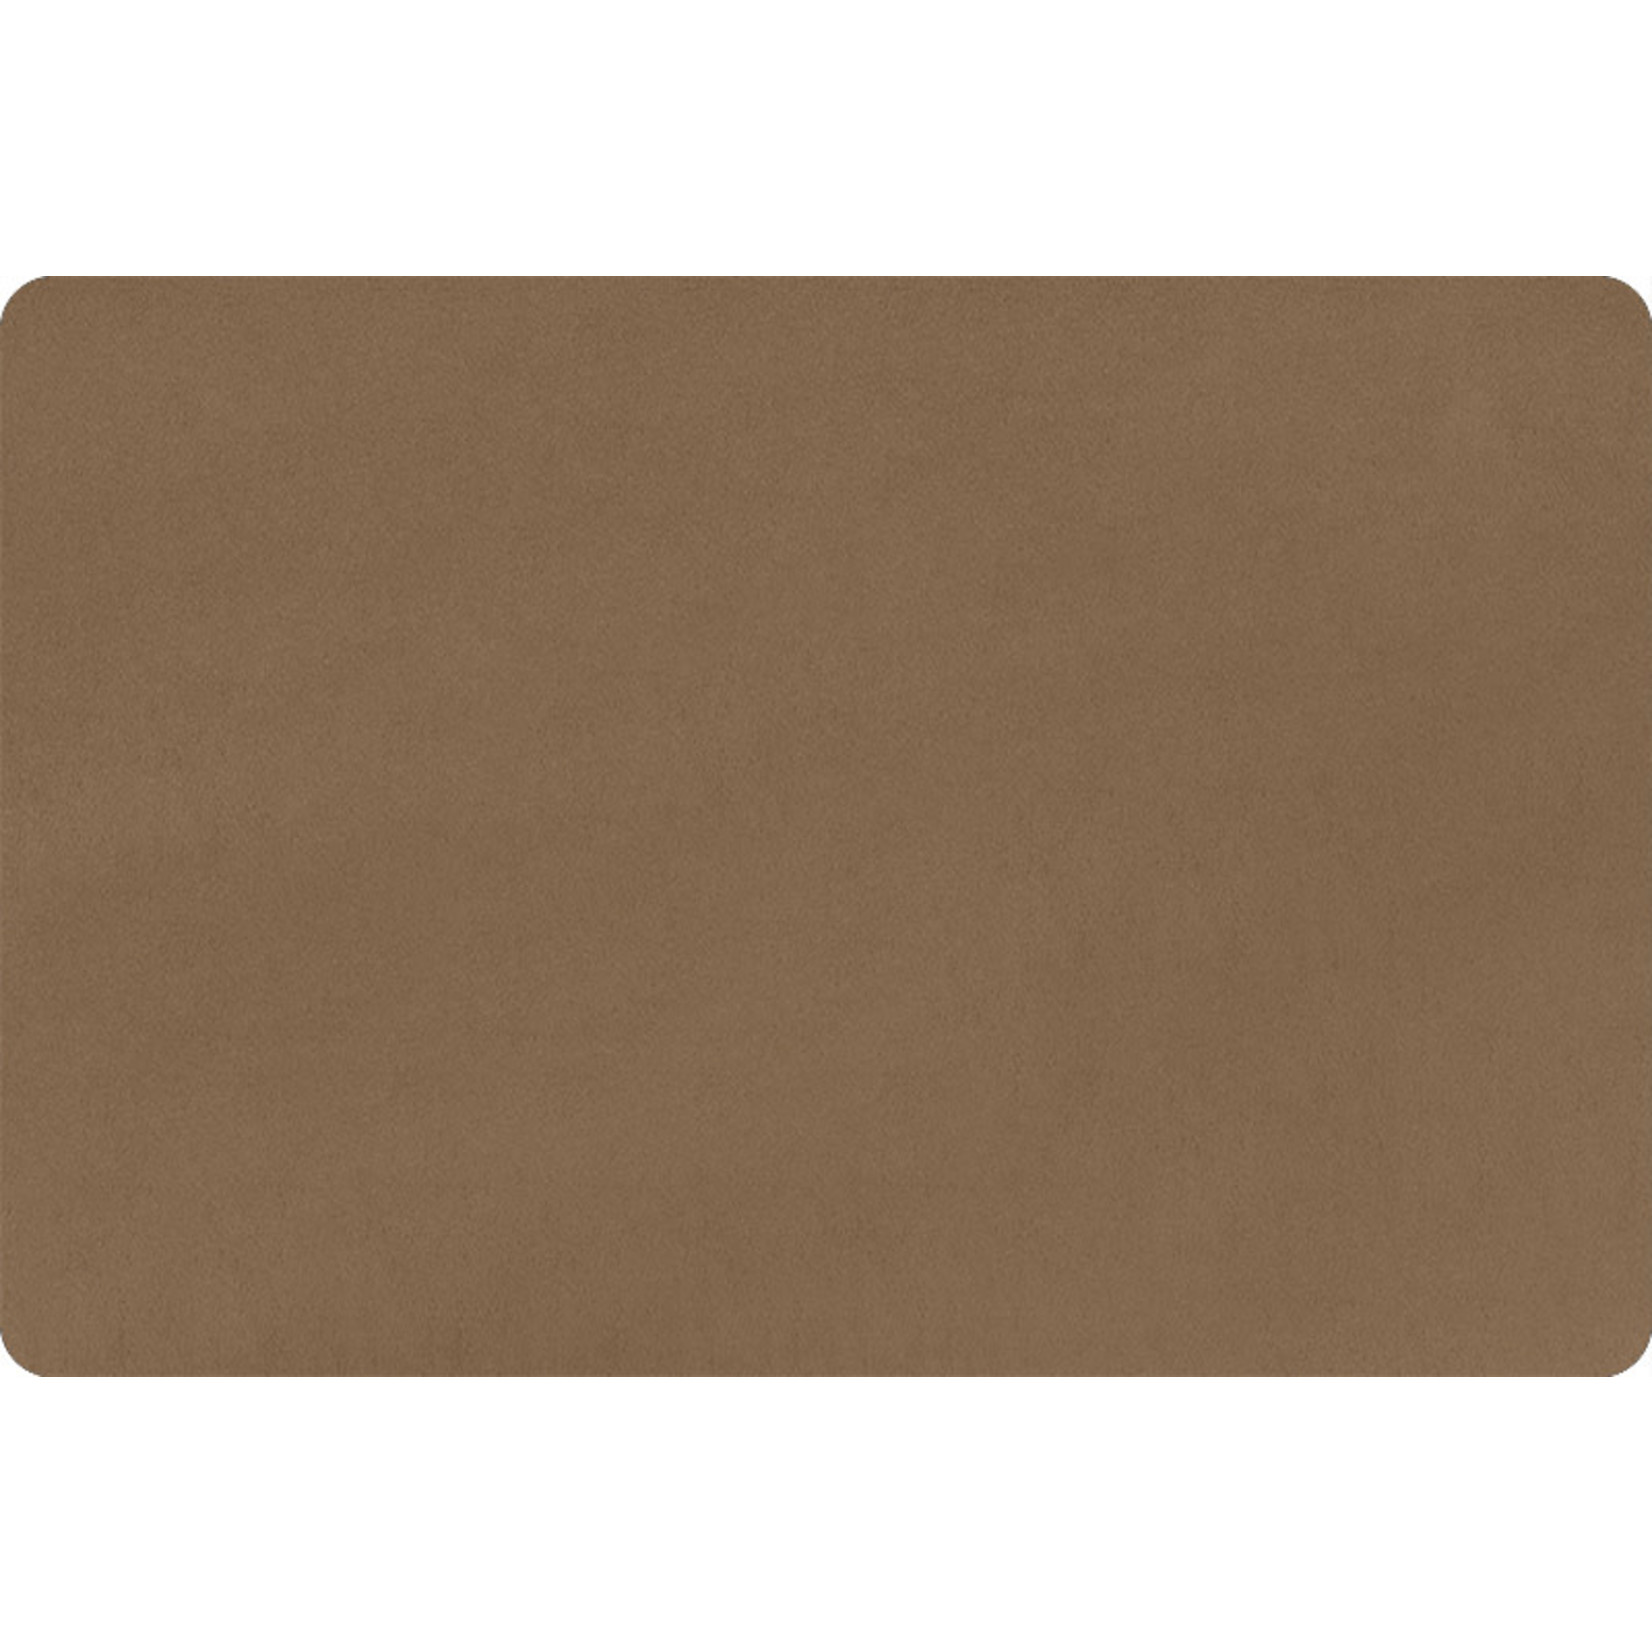 """Shannon Fabrics Minky, Extra Wide Solid Cuddle3, 90"""" Cocoa, (by the inch)"""